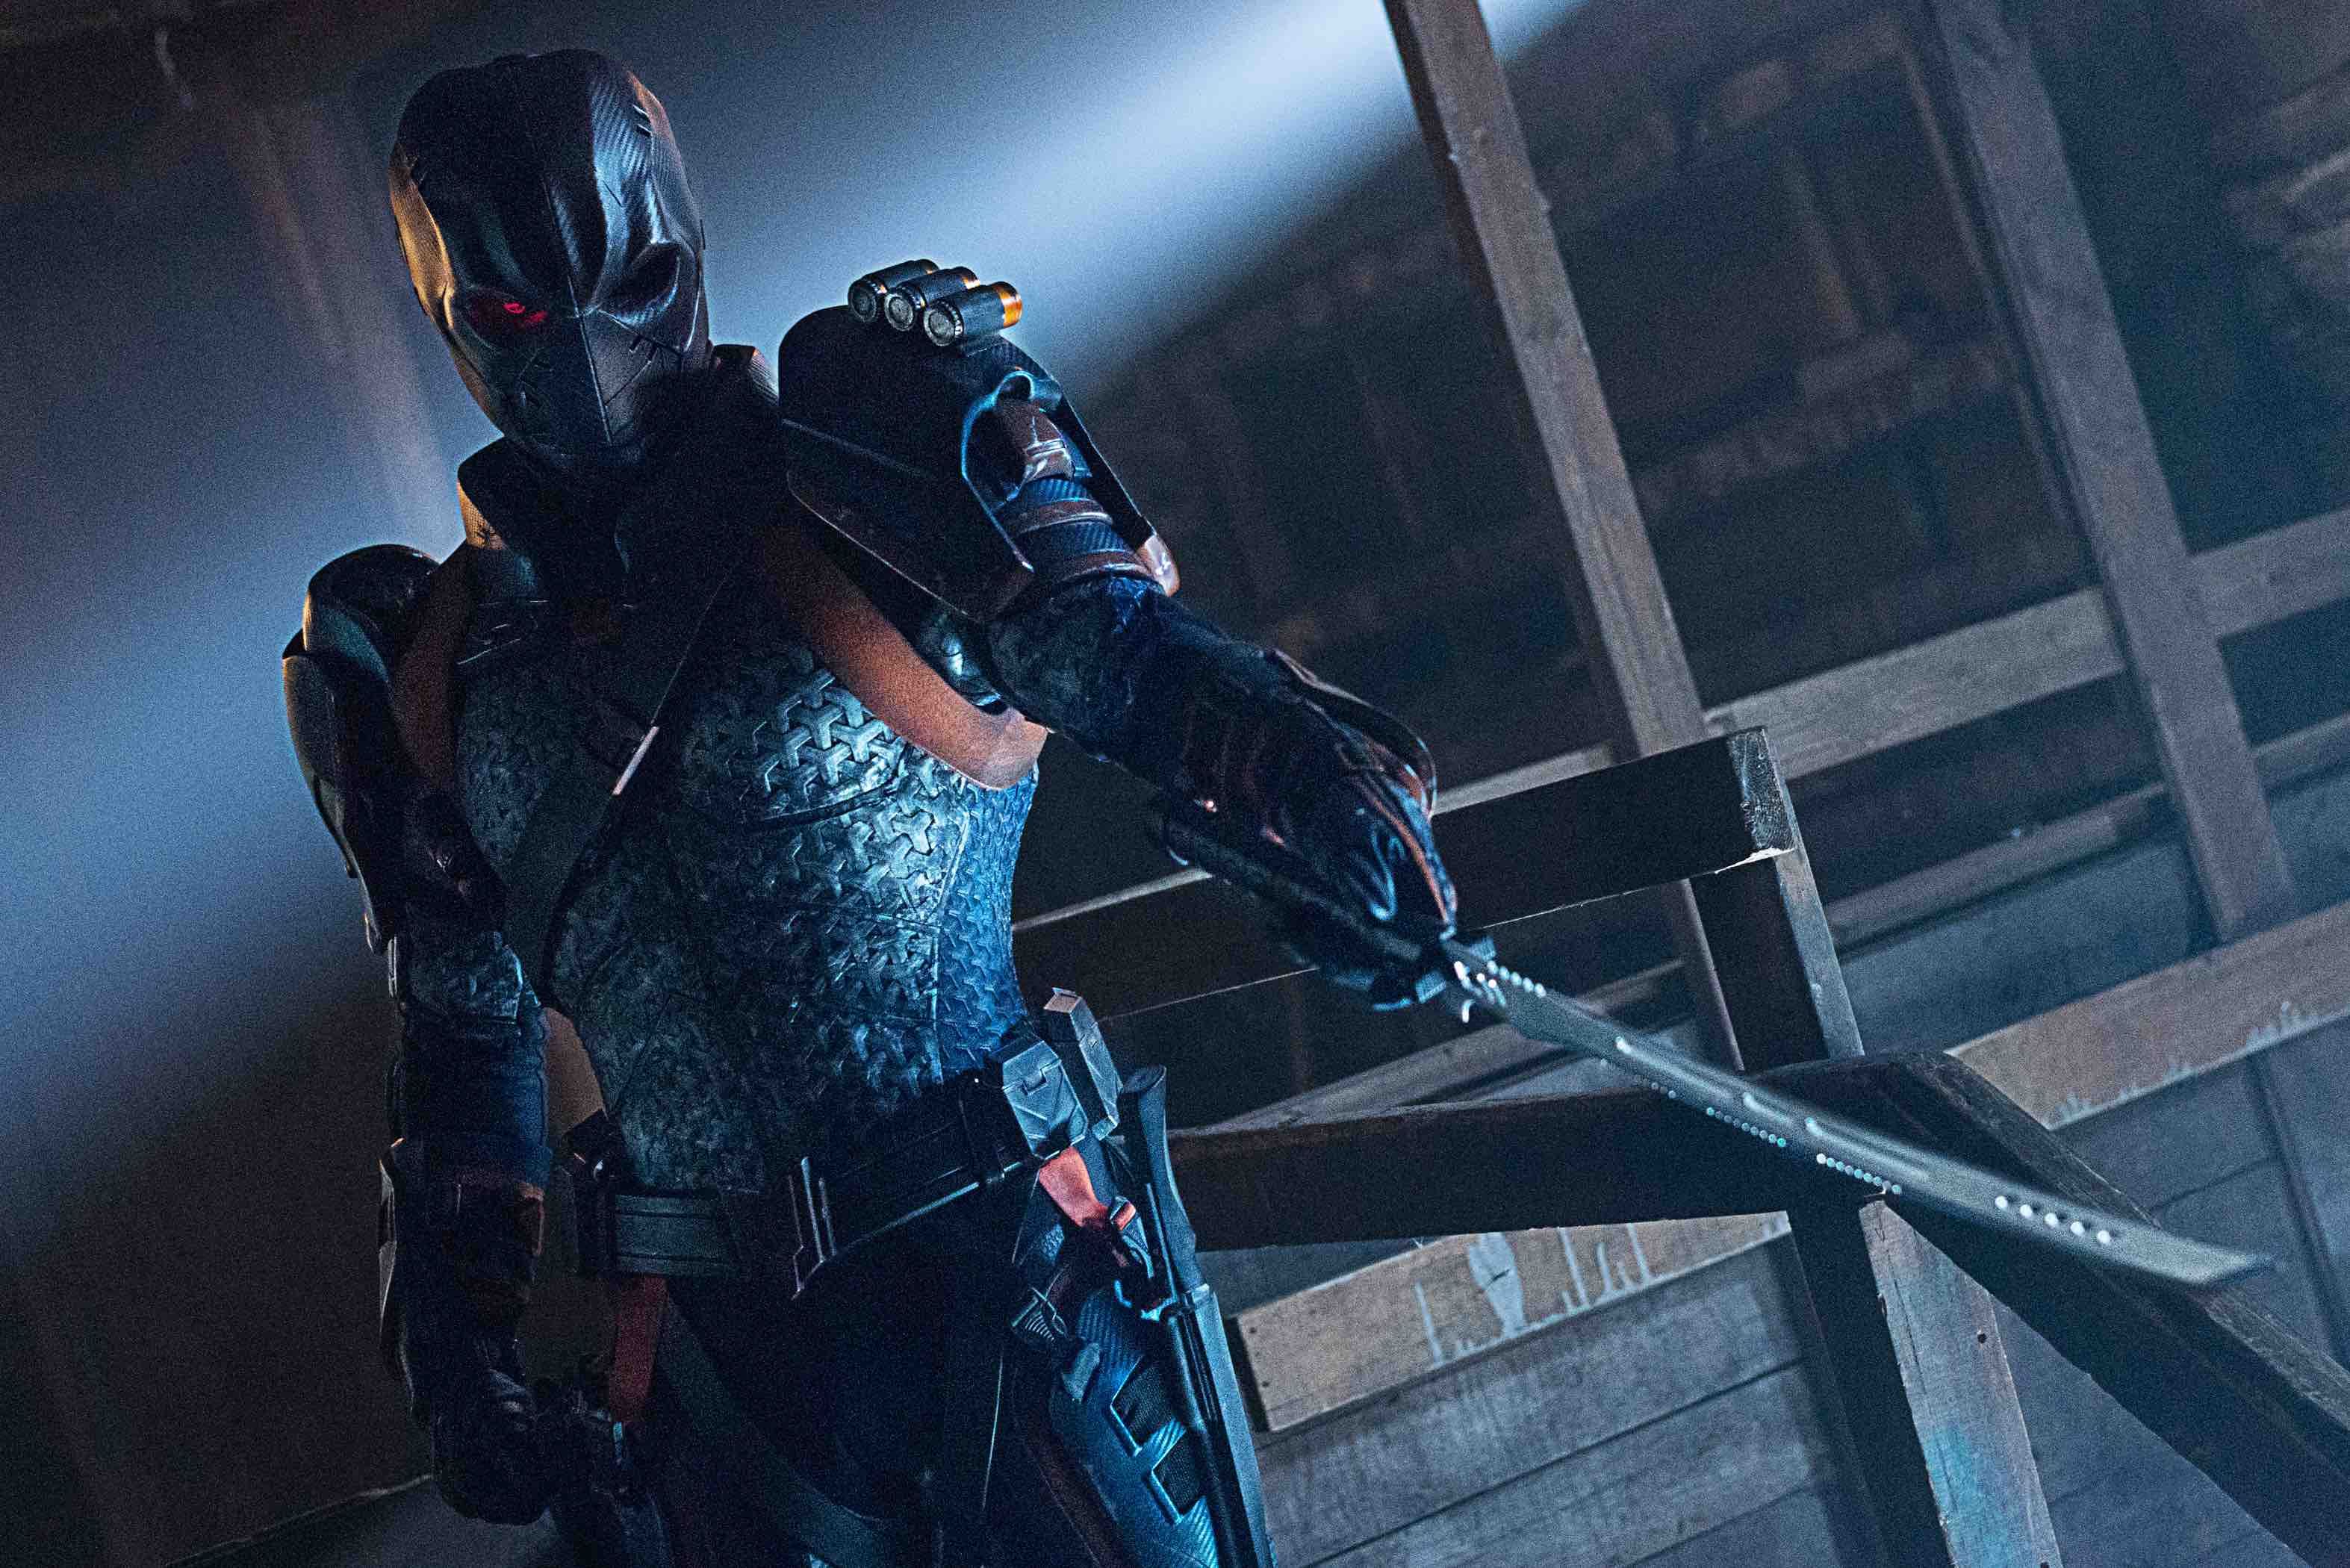 """Titans -- Ep. 205 -- """"Deathstroke"""" -- Photo Credit: Sven Frenzel / 2019 Warner Bros. Entertainment Inc. All Rights Reserved."""